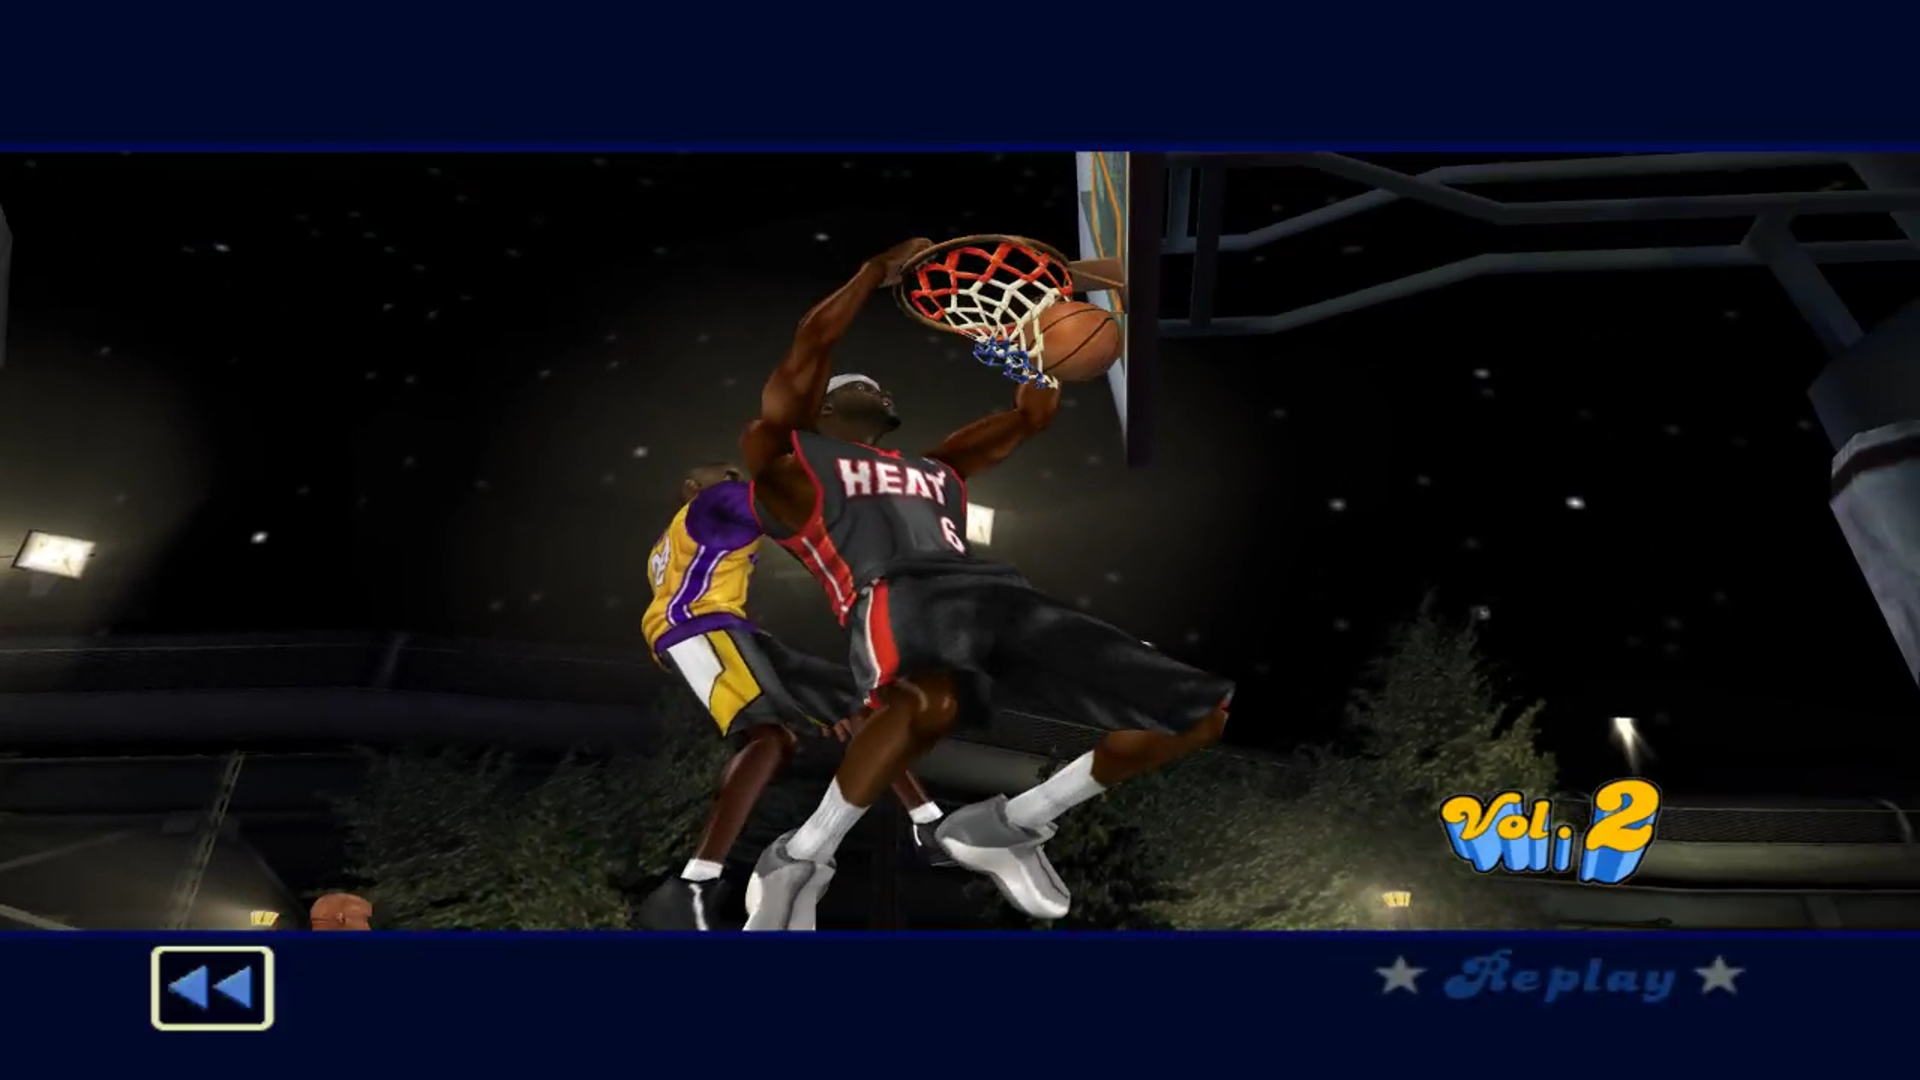 NBA Street Vol. 2 HDR Update ('13-'14)